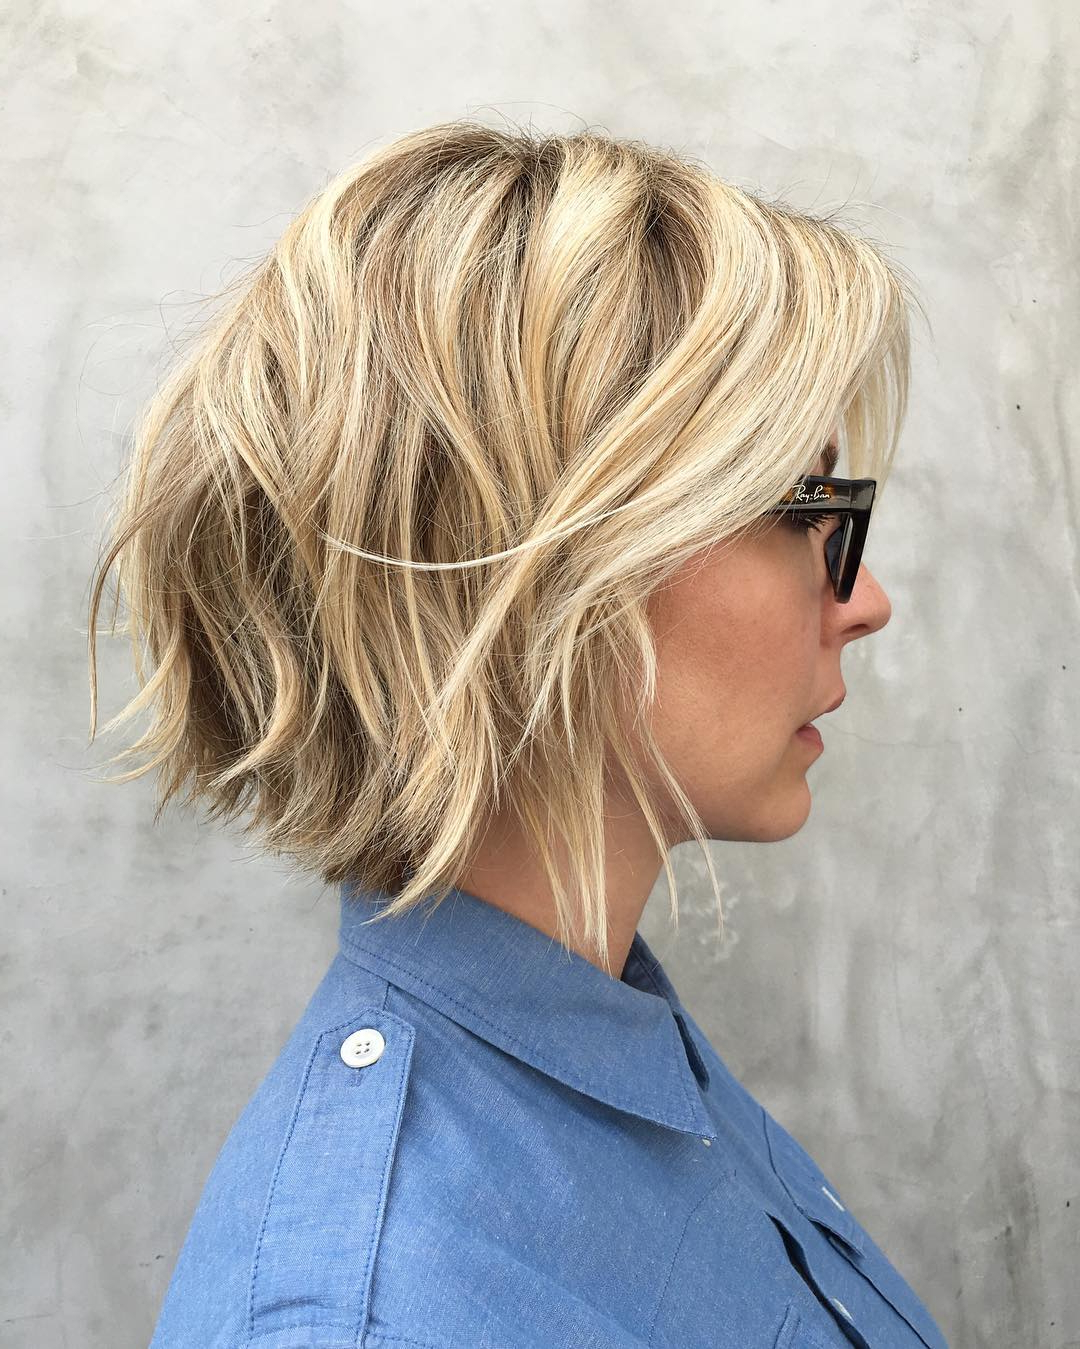 30 Trendiest Shaggy Bob Haircuts Of The Season Intended For Well Liked Uneven Layered Bob Hairstyles For Thick Hair (View 3 of 20)